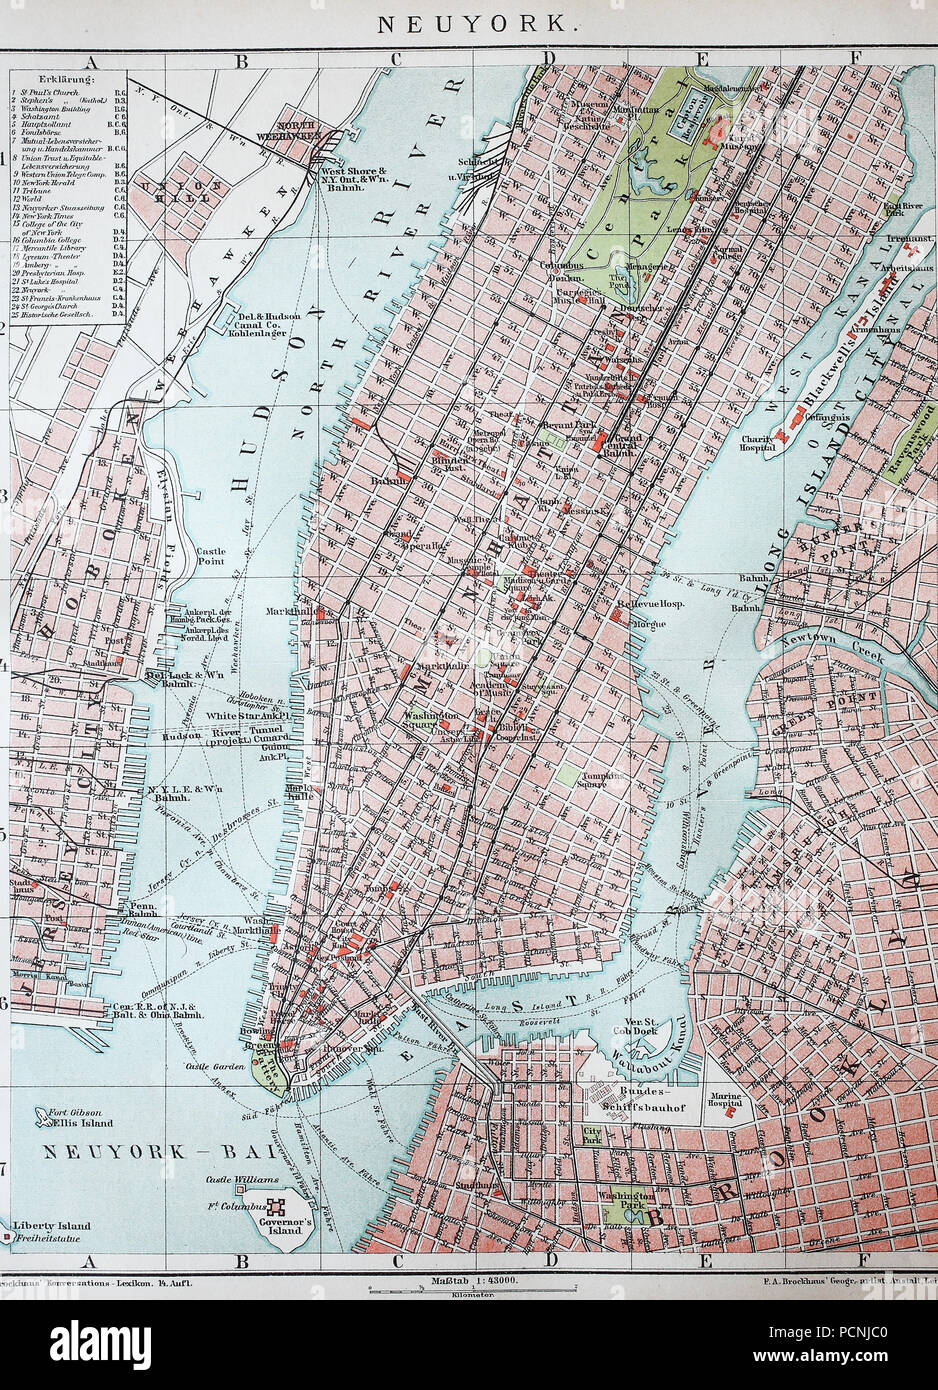 Map Of Old New York.Old City Map Of New York And Manhattan Usa Digital Improved